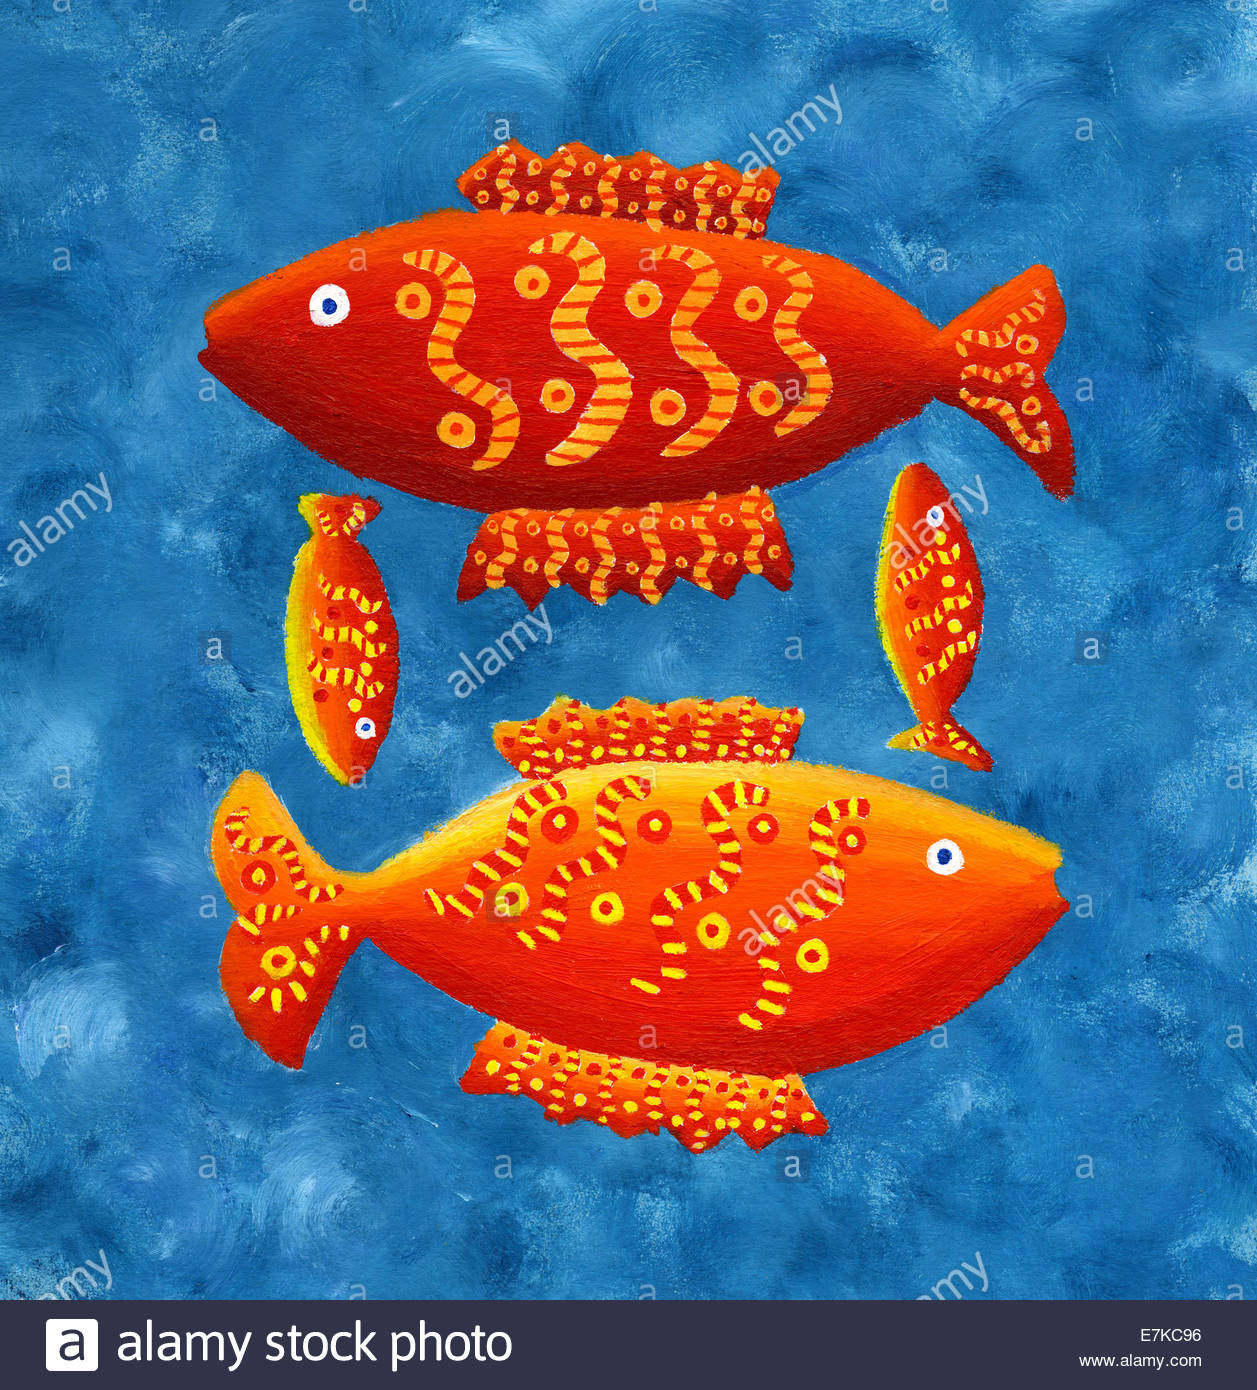 Fish Lover Stock Photos & Fish Lover Stock Images - Alamy